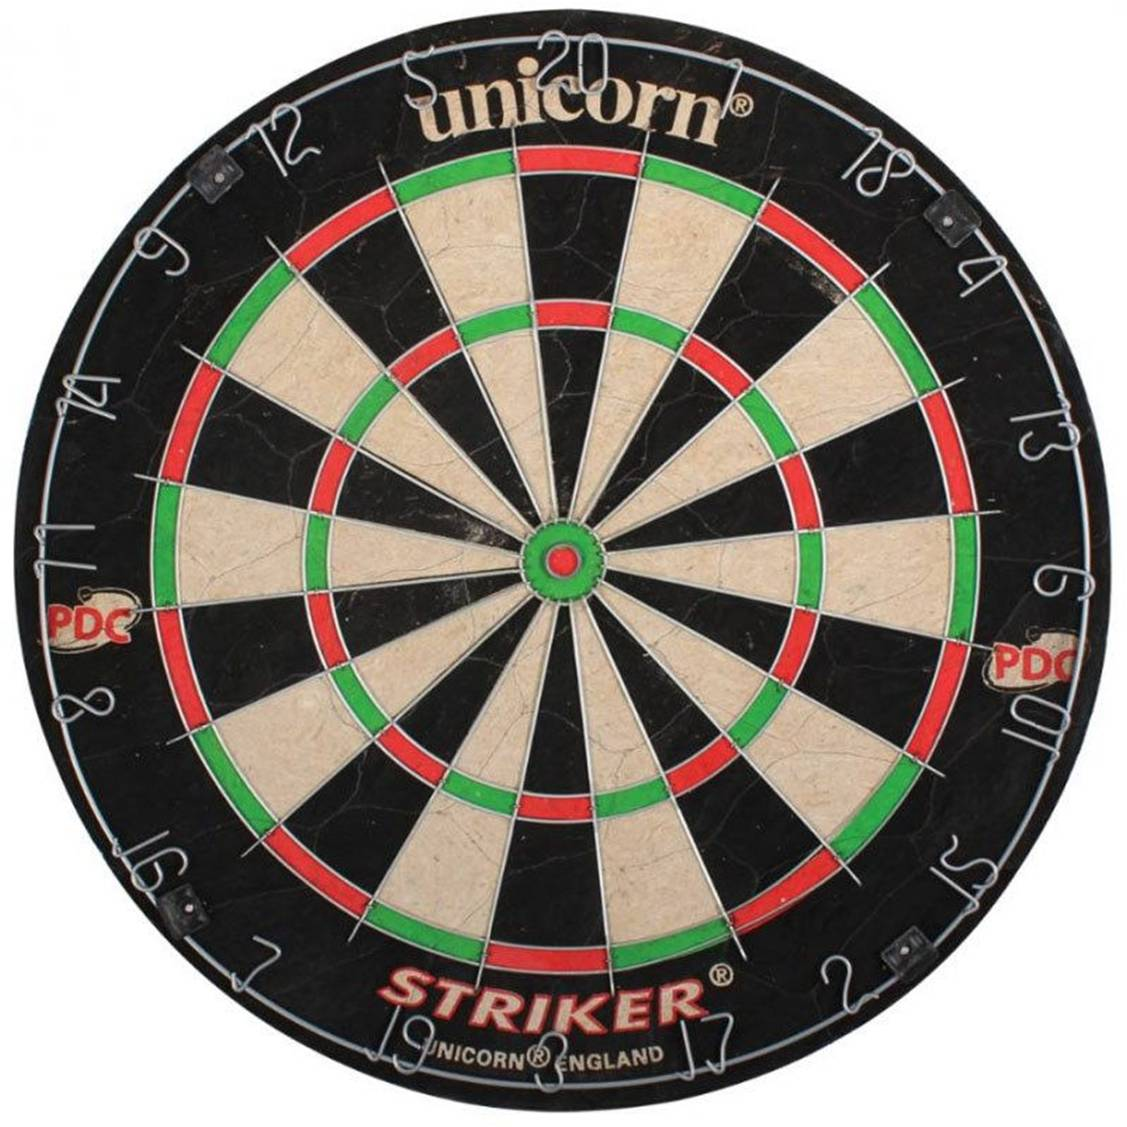 STRIKER DARTBOARD – UNICORN